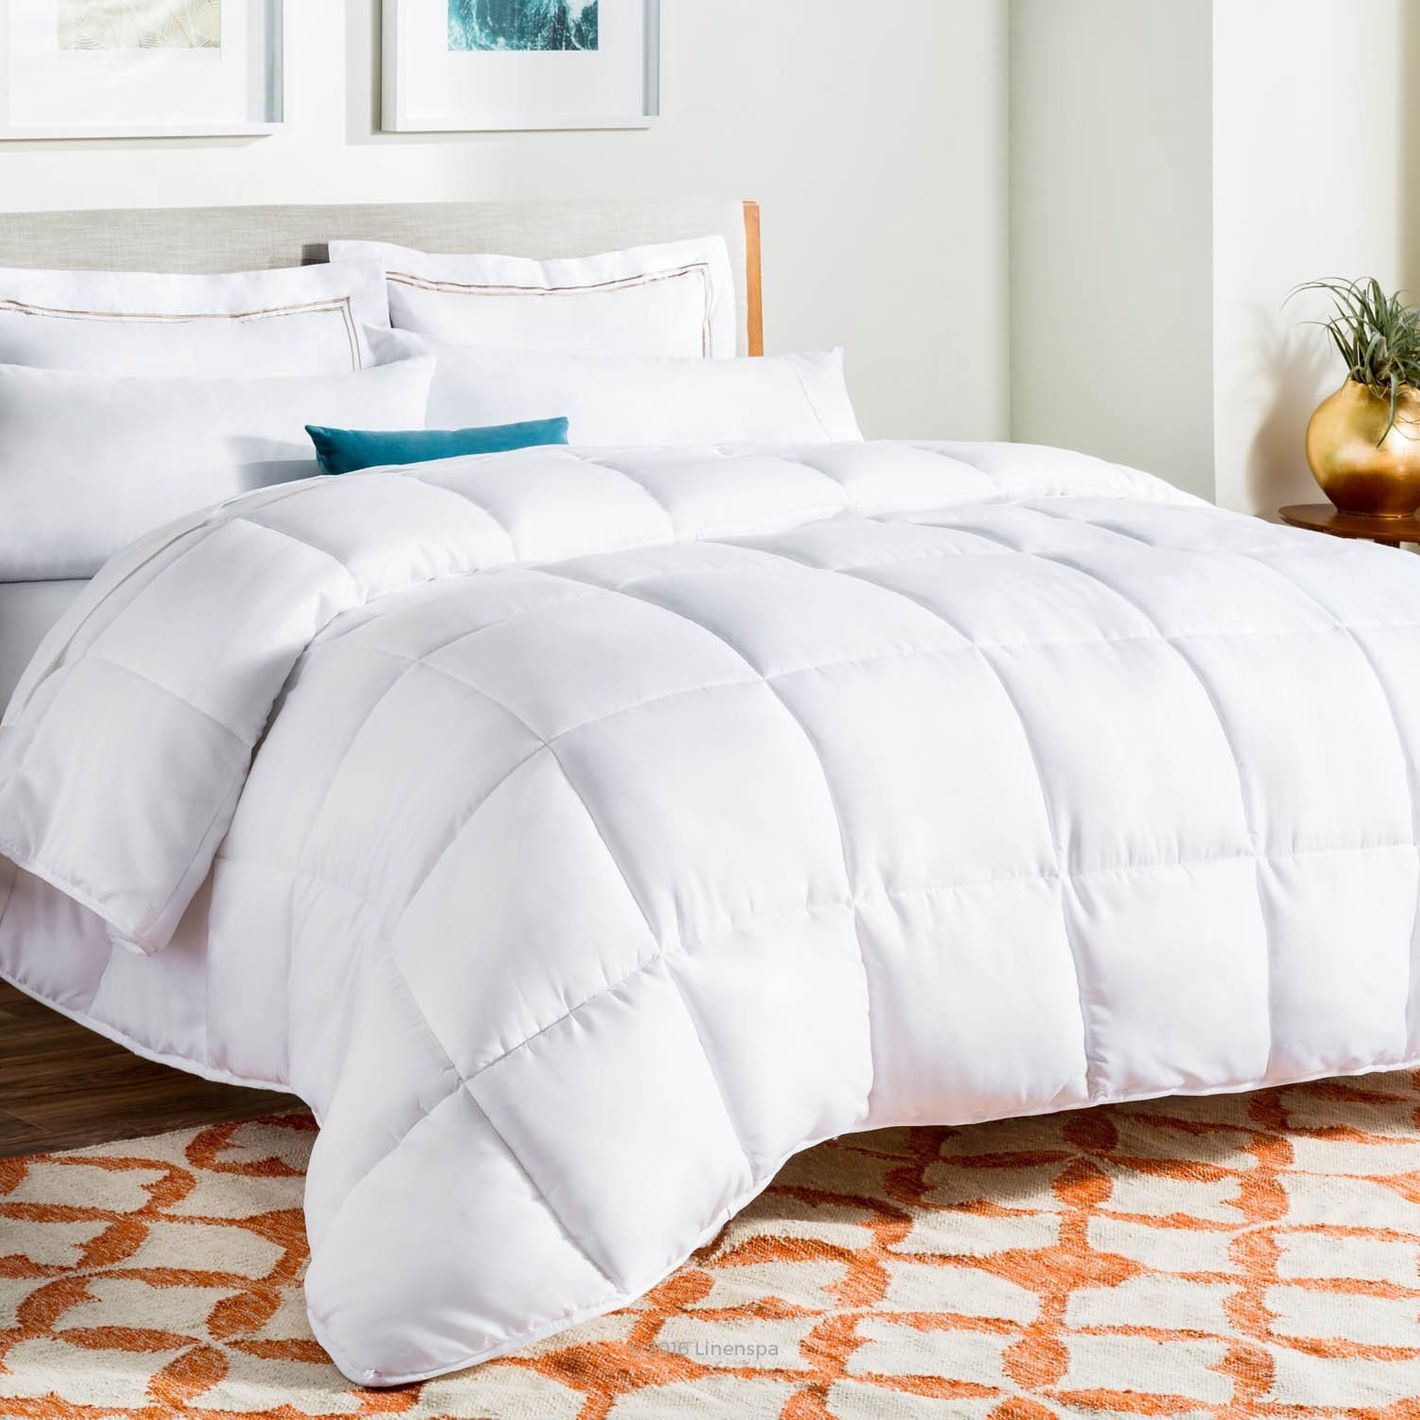 down best comforters buyer ikea comforter review reviews guide s